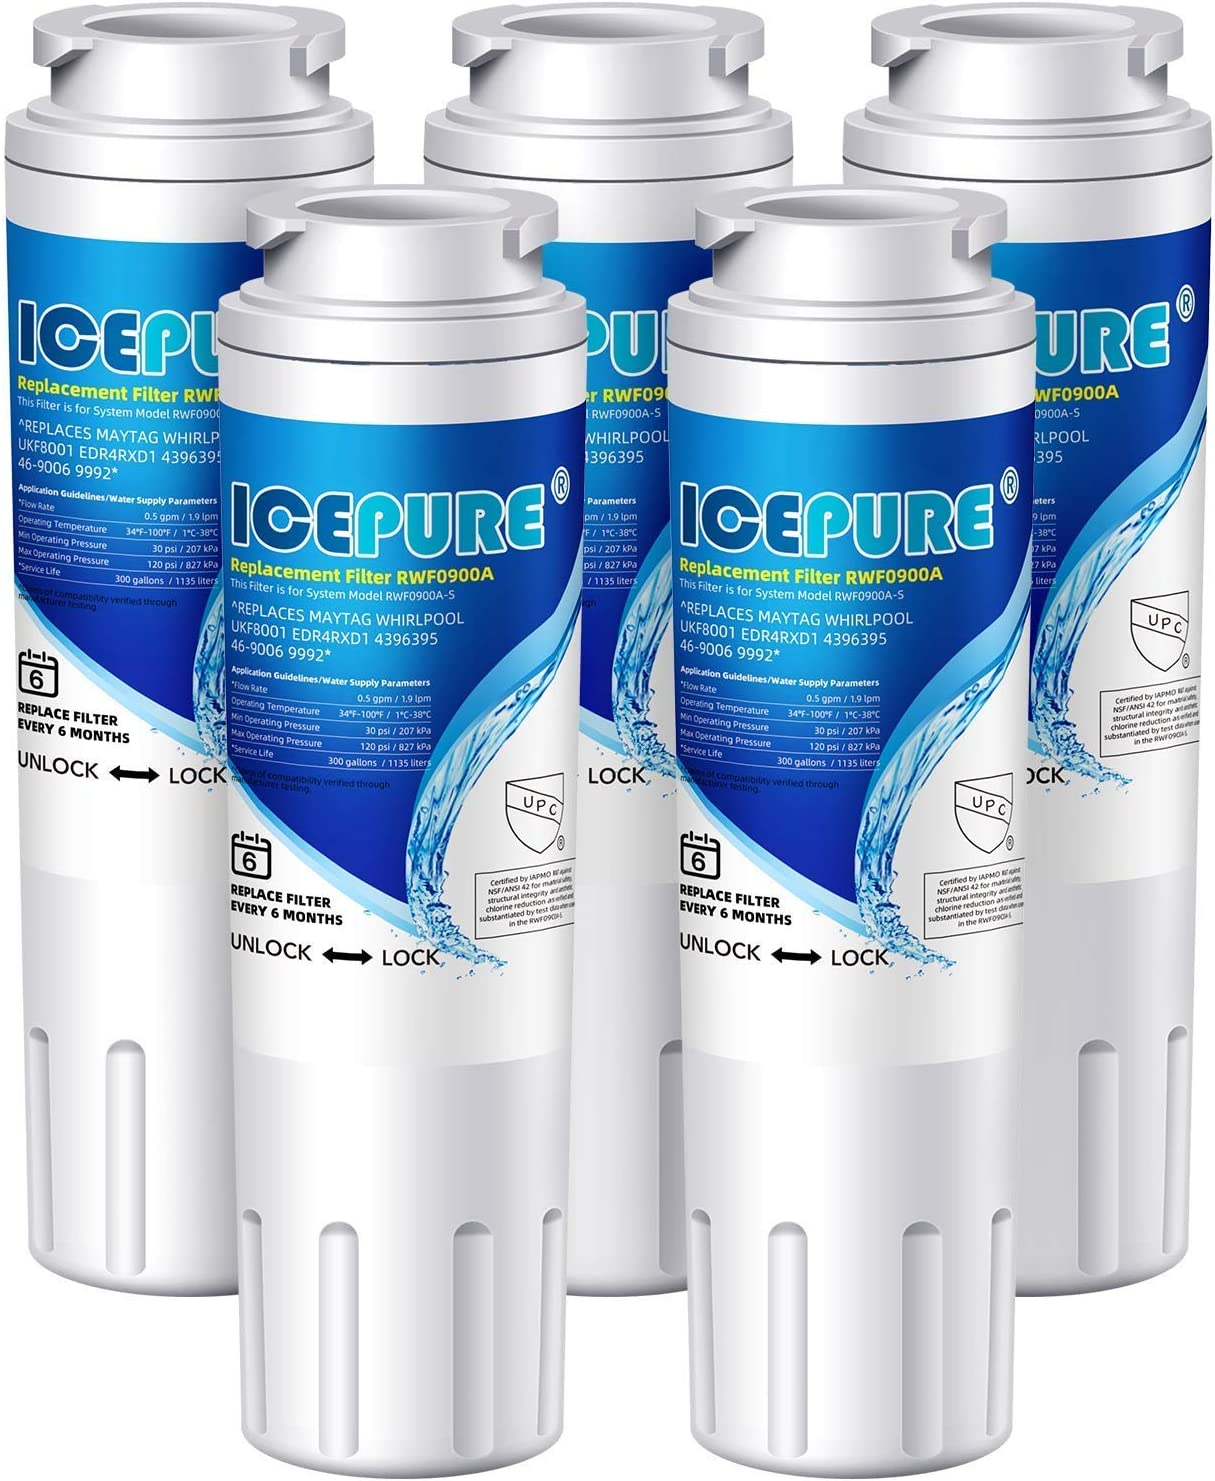 ICEPURE UKF8001 Replacement Refrigerator Water Filter For Maytag UKF8001, UKF8001AXX, Whirlpool 4396395, EDR4RXD1, 469006, EveryDrop Filter 4, RWF0900A, 5PACK